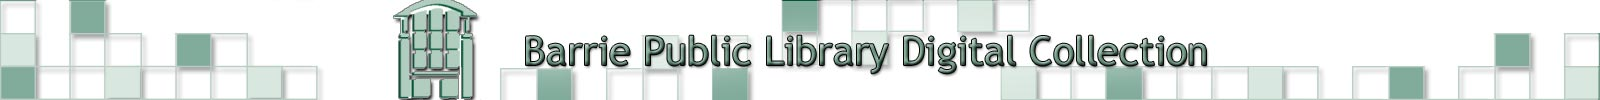 Barrie Public Library Digital Collections